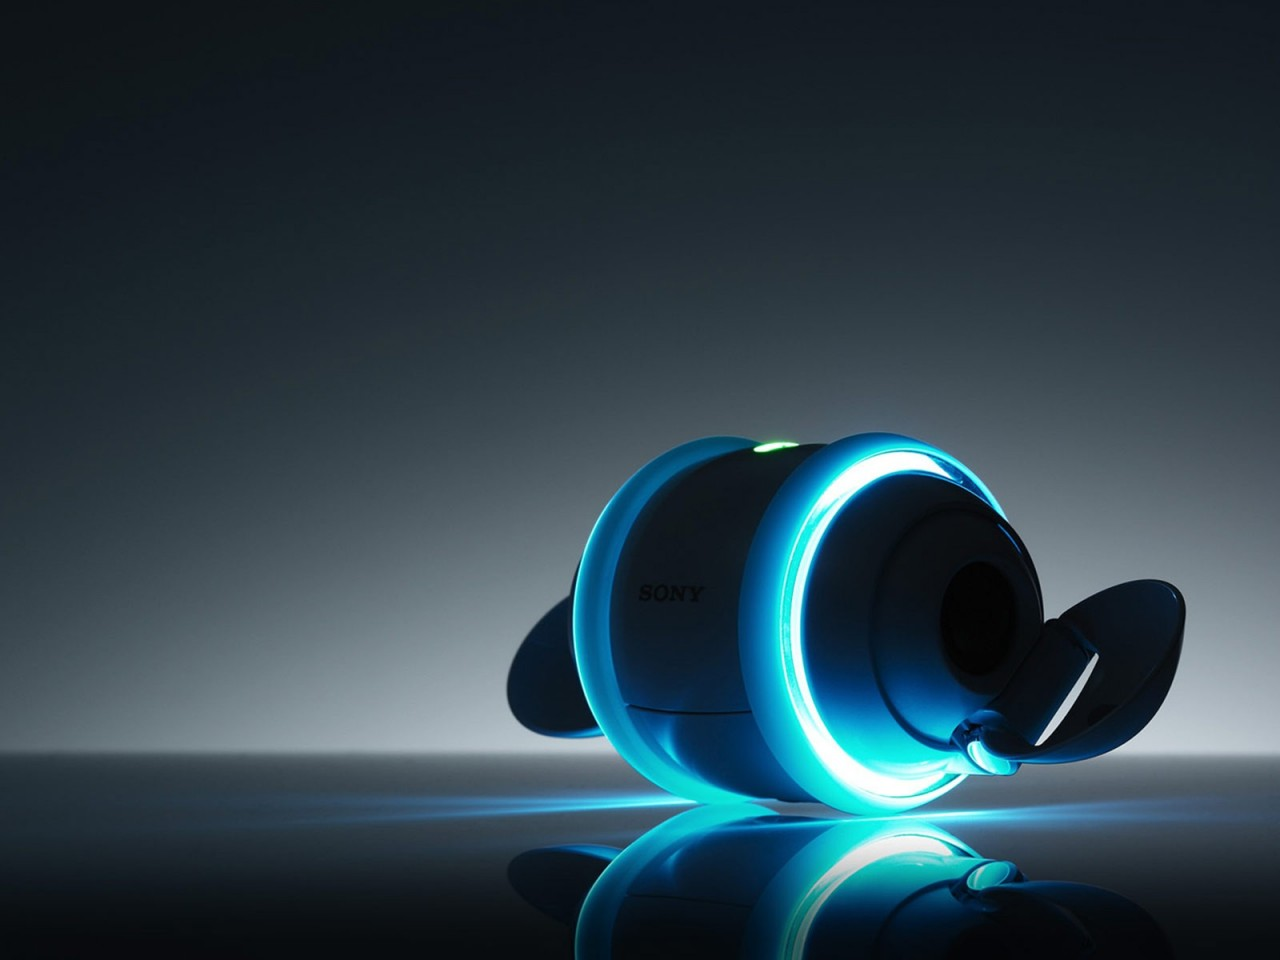 Sony device desktop background hd wallpapers for Immagini 3d hd